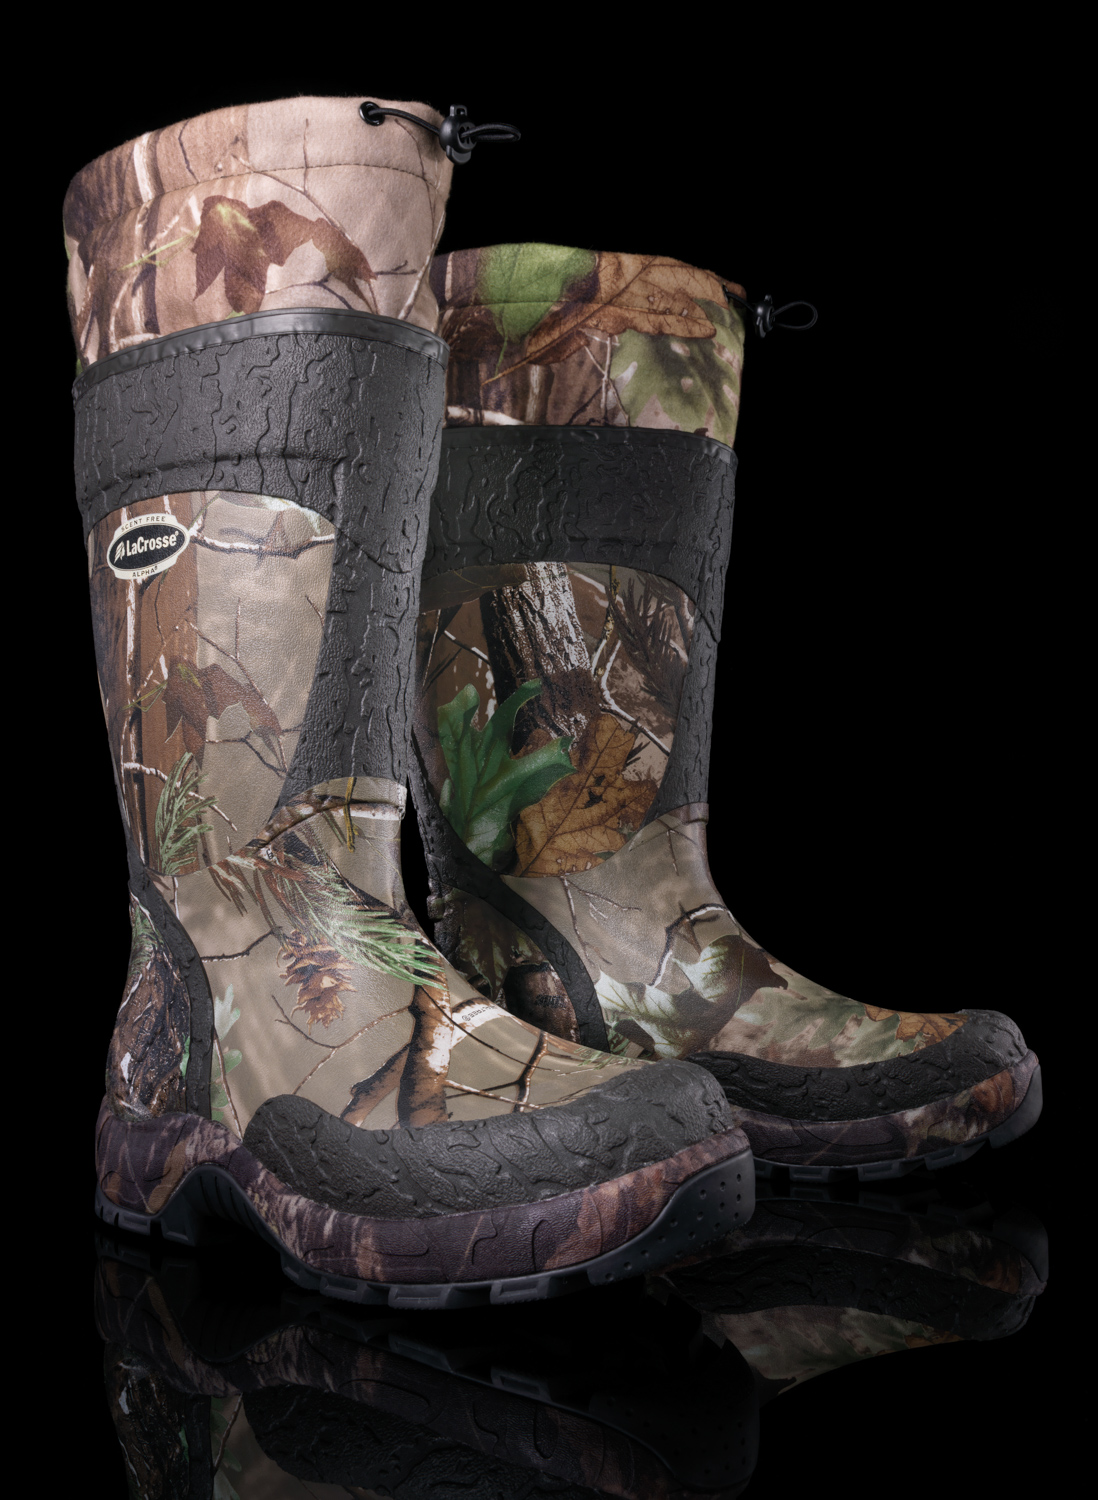 Example of product photography shot in studio: pair of camouflage water proof boots.